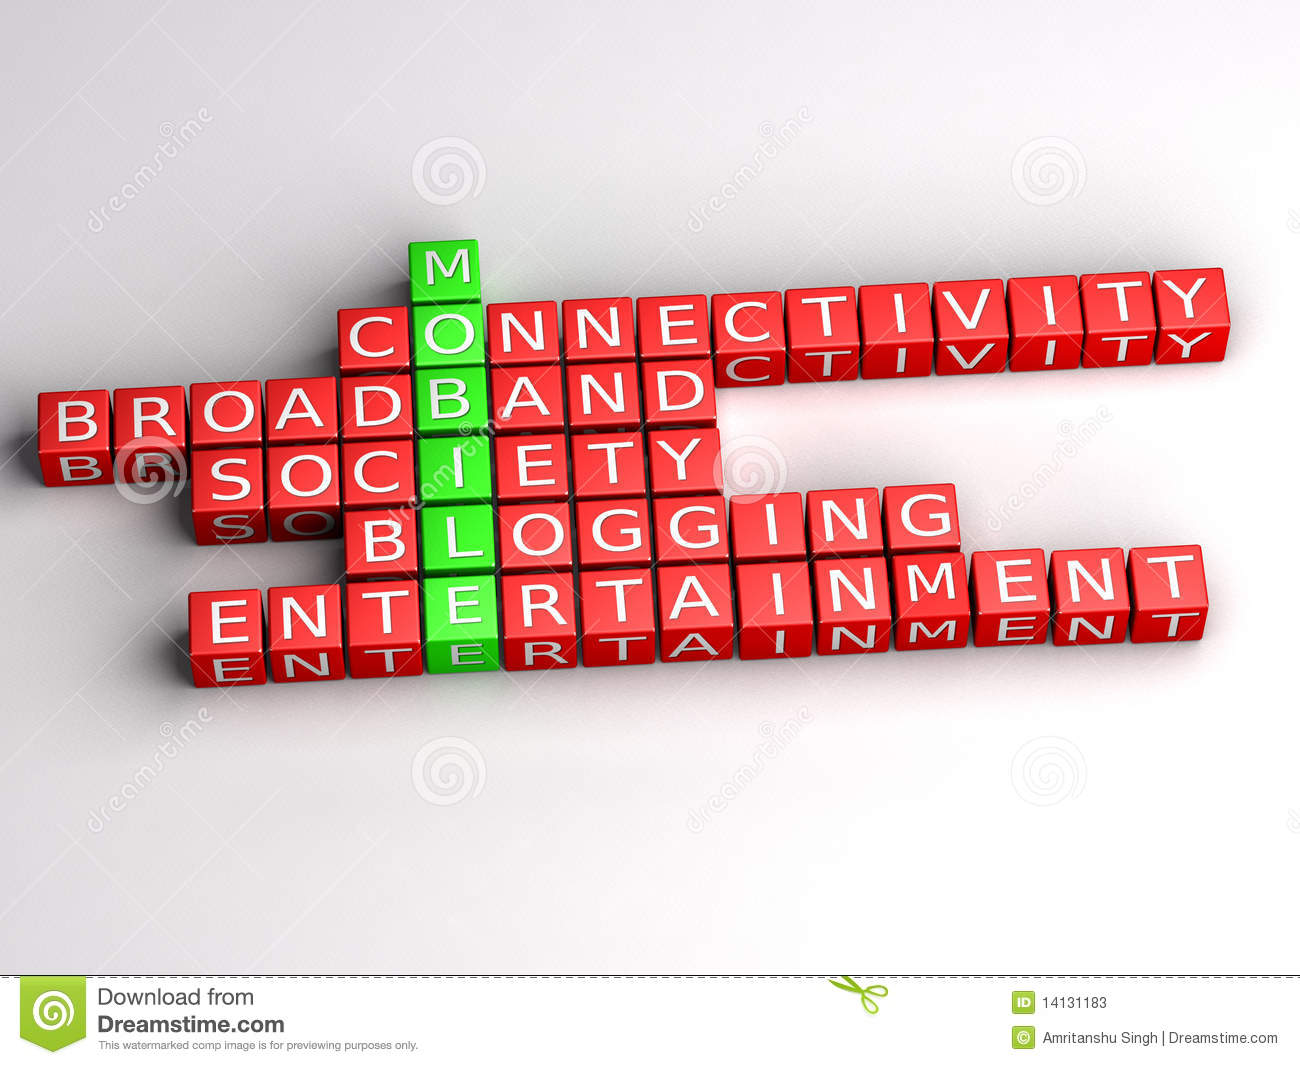 mobile internet communication puzzle stock illustration - image, Powerpoint templates